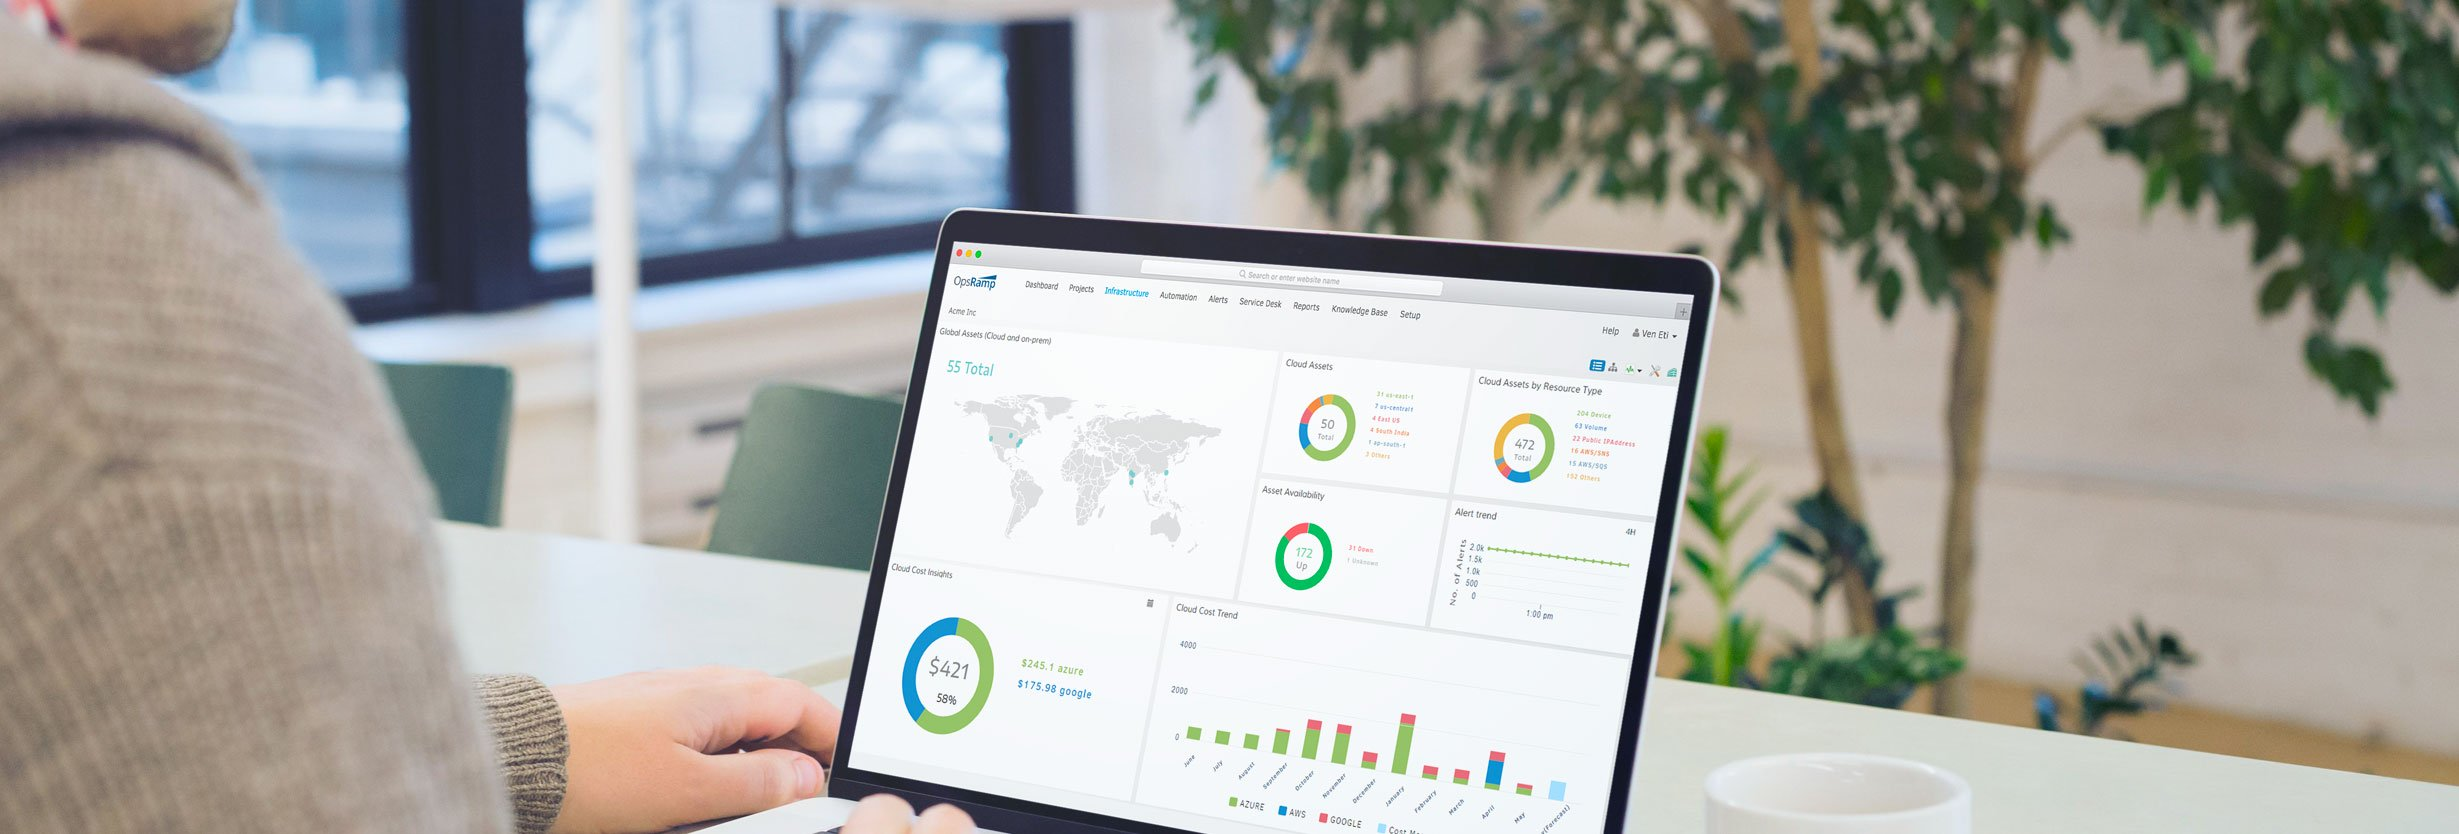 Build A Data-Driven Culture For Digital Operations Management With OpsRamp's Role-Based Dashboards